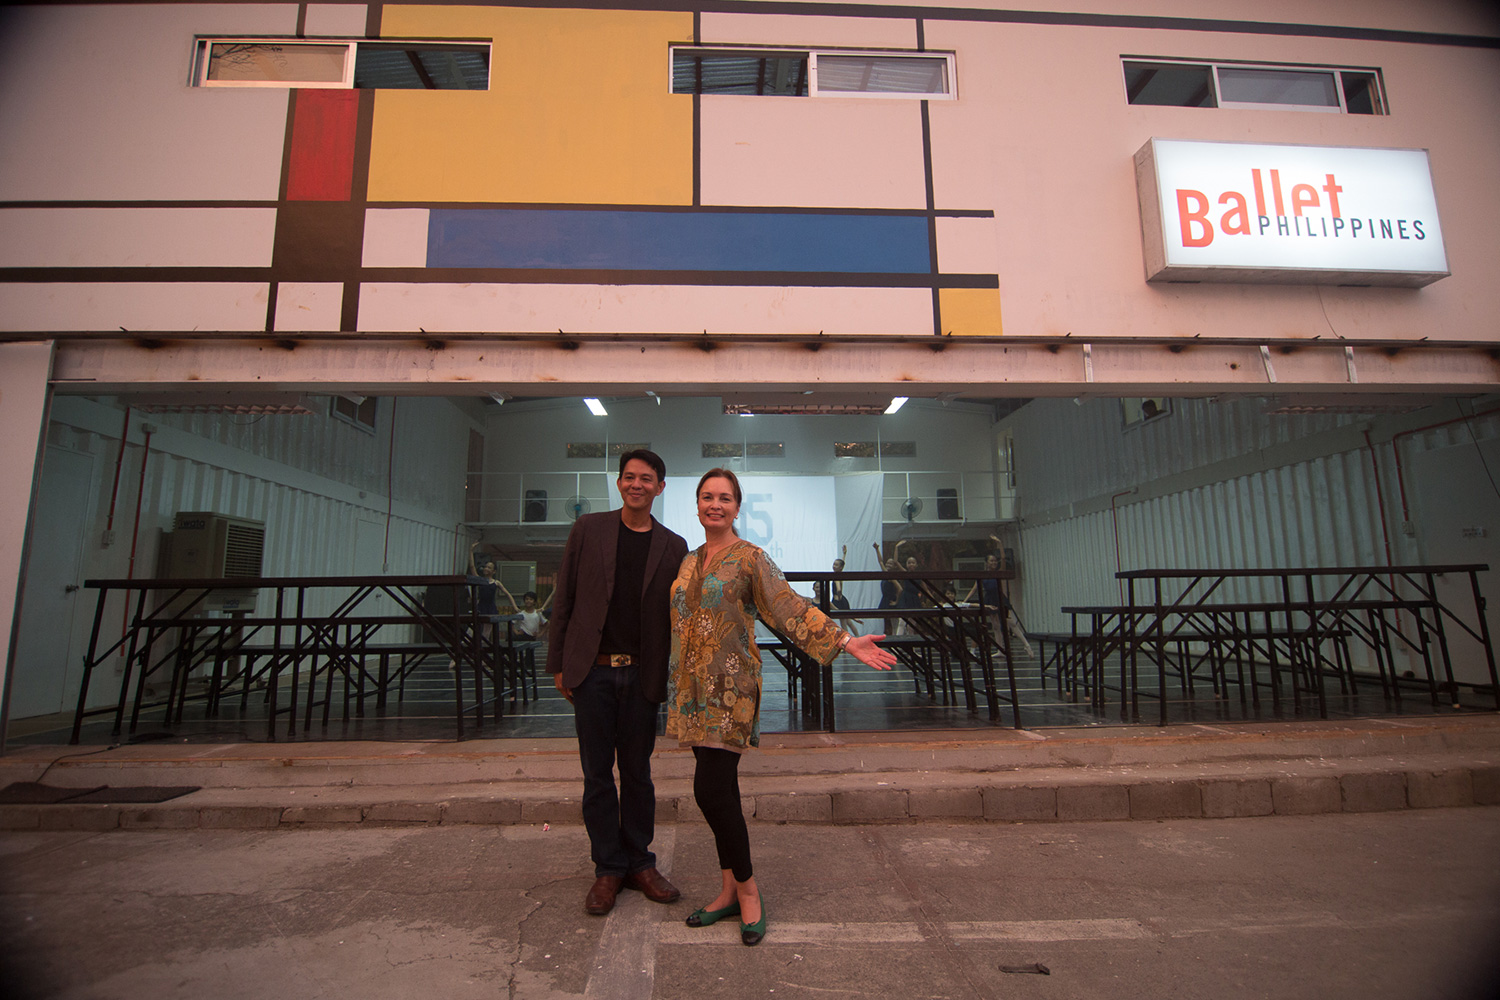 Margie Moran-Floirendo and Paul Morales at the opening of the studio (Photo by© John Christopher Yuhico)